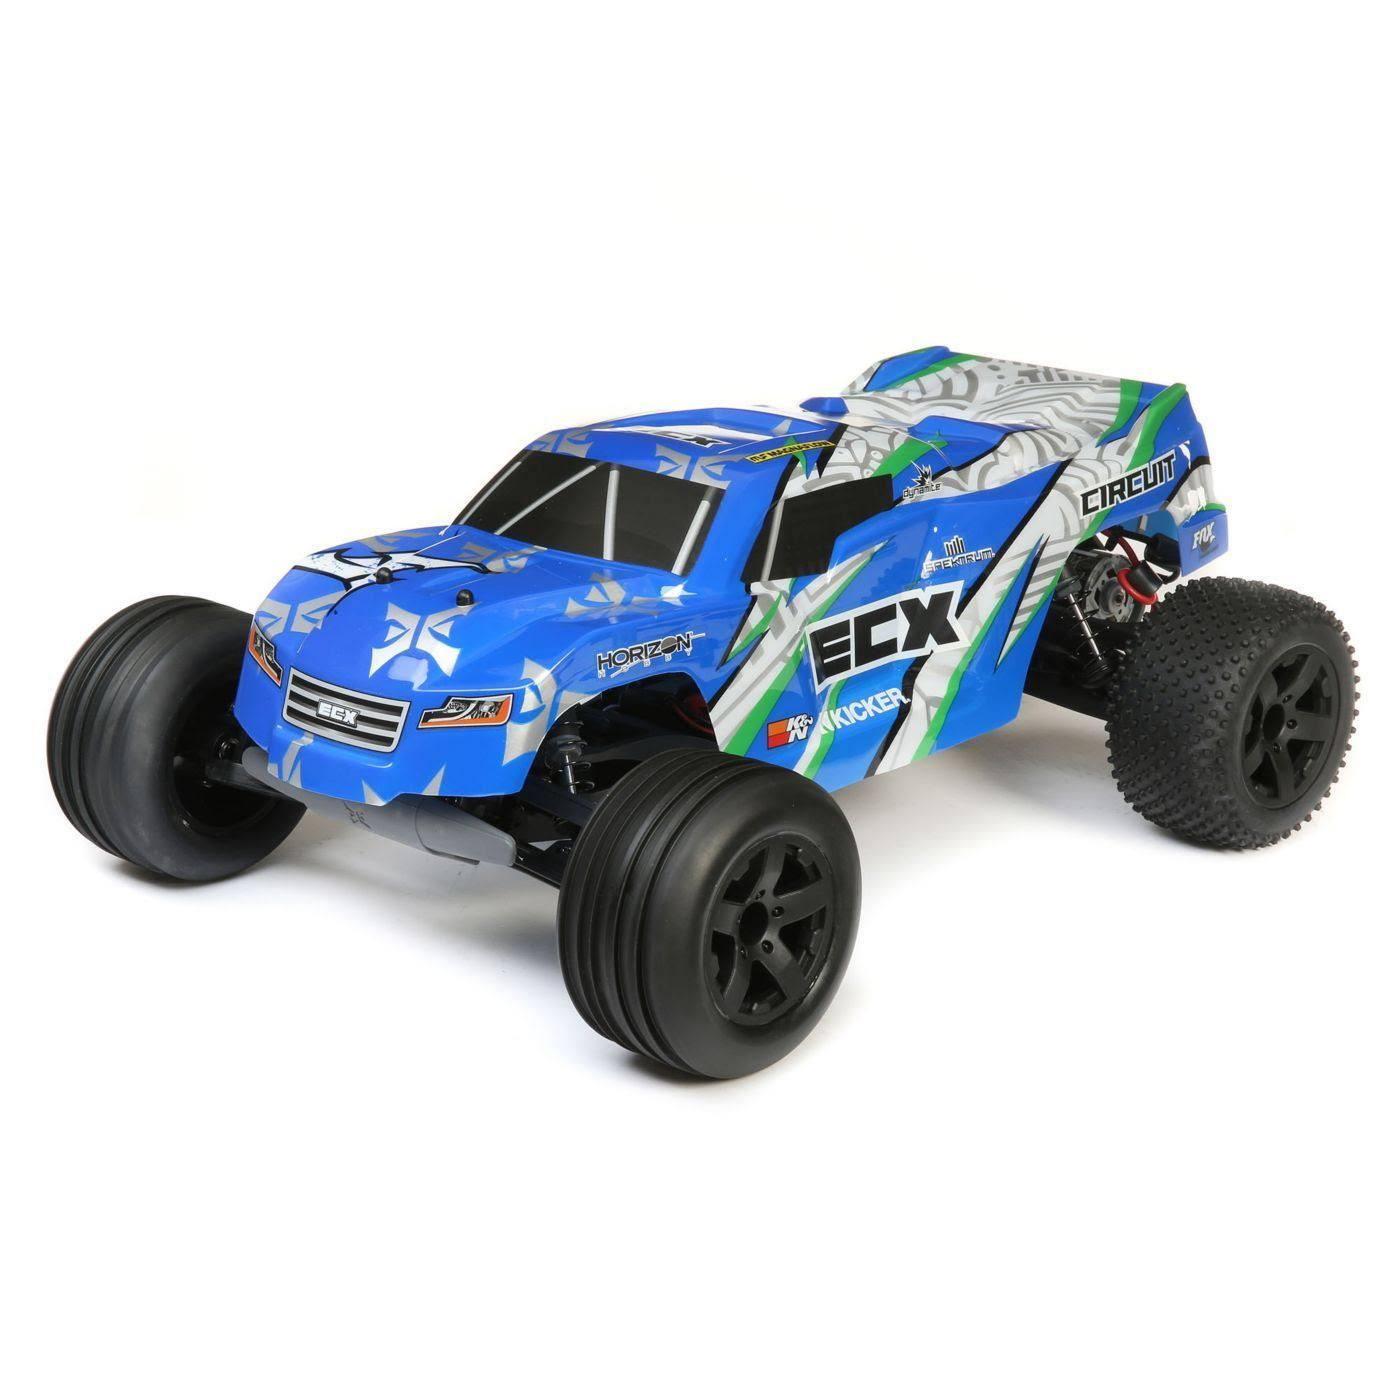 ECX Circuit 2WD Stadium Brushed Ready To Run Truck - Blue and White, Scale 1:10